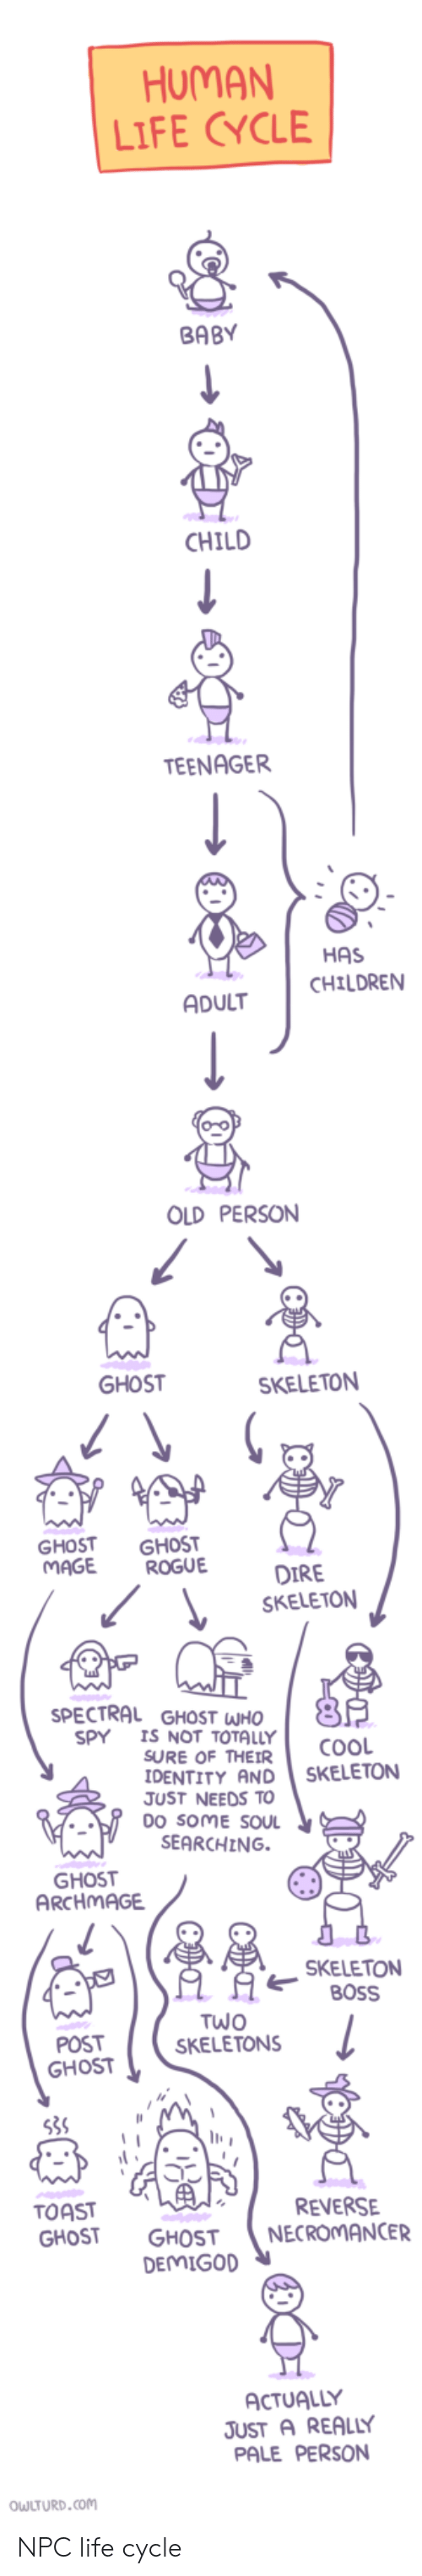 Human Life: HUMAN  LIFE CYCLE  BABY  CHILD  TEENAGER  HAS  CHILDREN  ADULT  OLD PERSON  SKELETON  GHOST GHOST  MAGE ROGUE  SKELETON  SPECTRAL GHOST WHO  5  SPY I NOT TOTALLY cooL  SURE OF THEIR  IDENTITY AND SKELETON  JUST NEEDS TO  DO SOME SOUL  SEARCHING.  SKELETON  80SS  POST  SKELETONS  OST  TOAST  GHOST GHOST NECROMANCER  REVERSE  DEMIGOD  ACTUALLY  JUST A REALLY  PALE PERSON  OWLTURD.com NPC life cycle